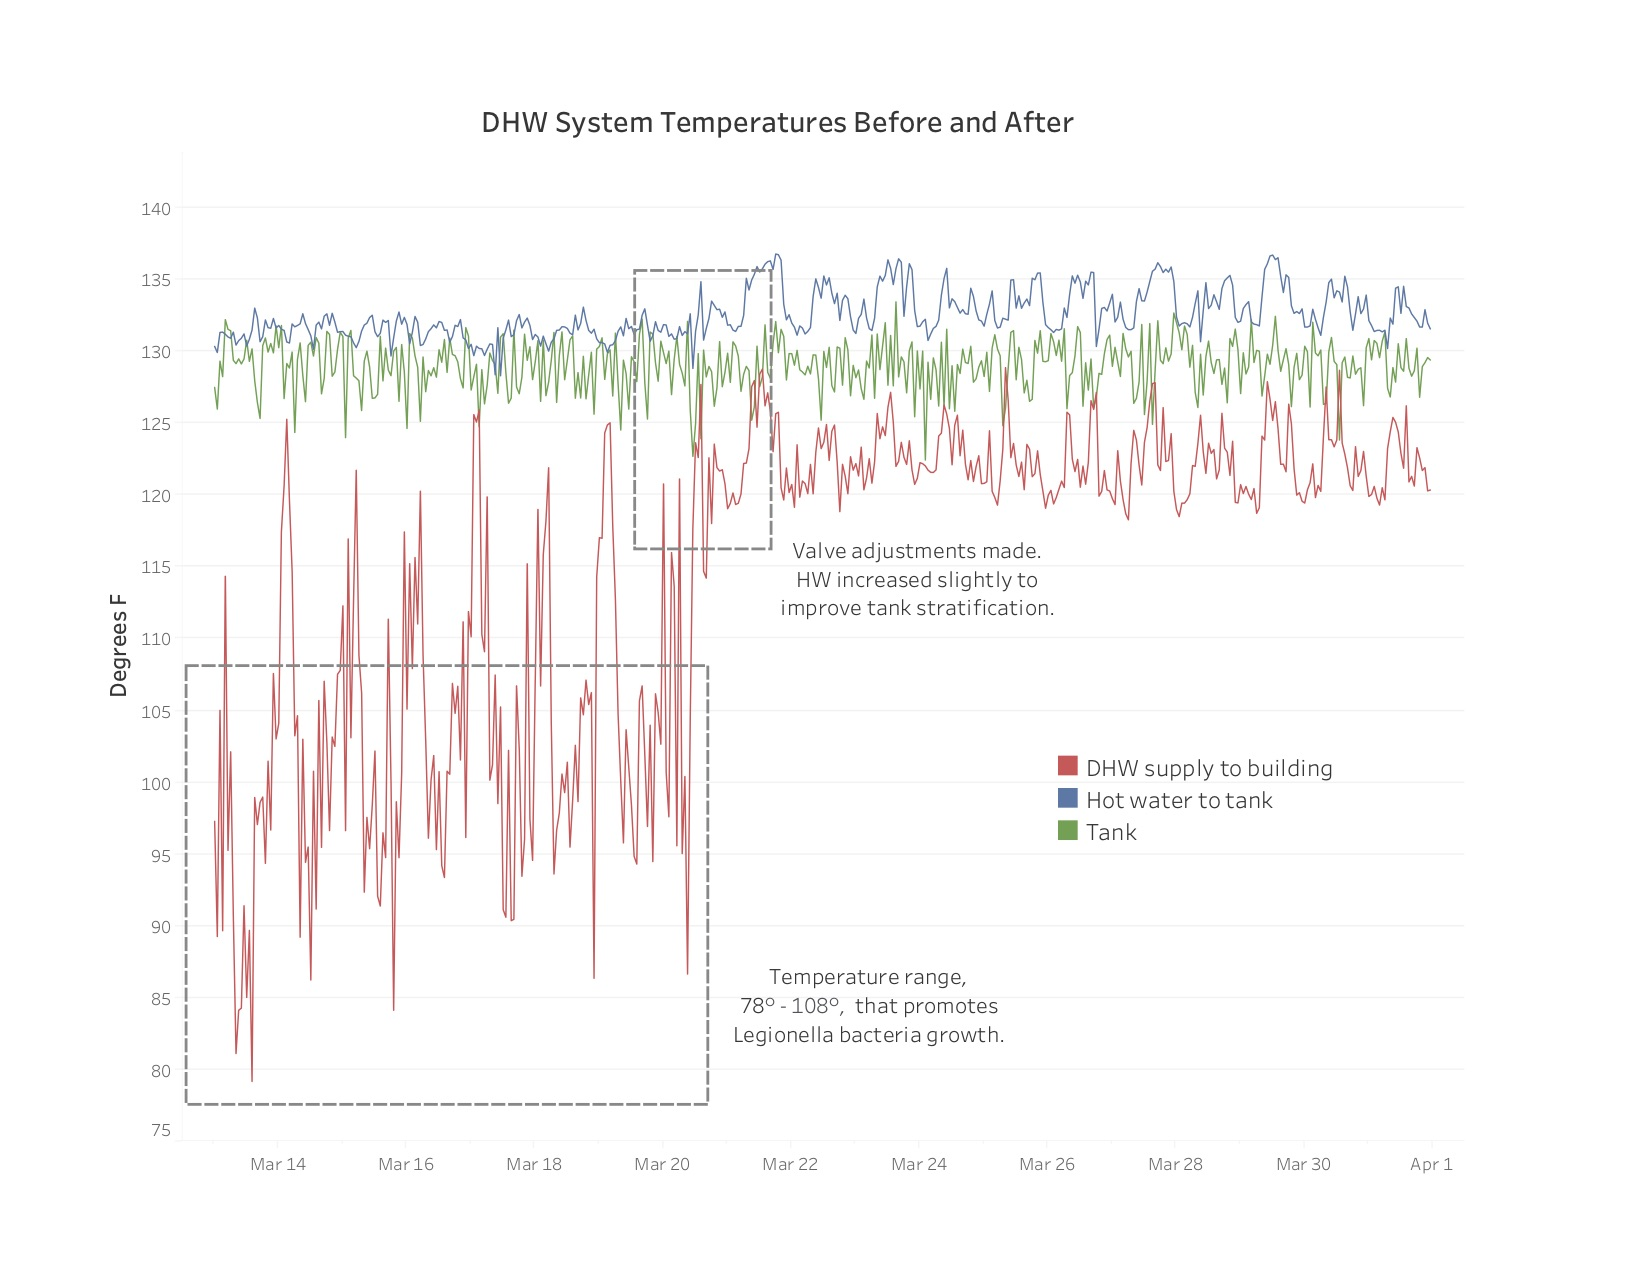 DHW system Temperatures Before and After chart